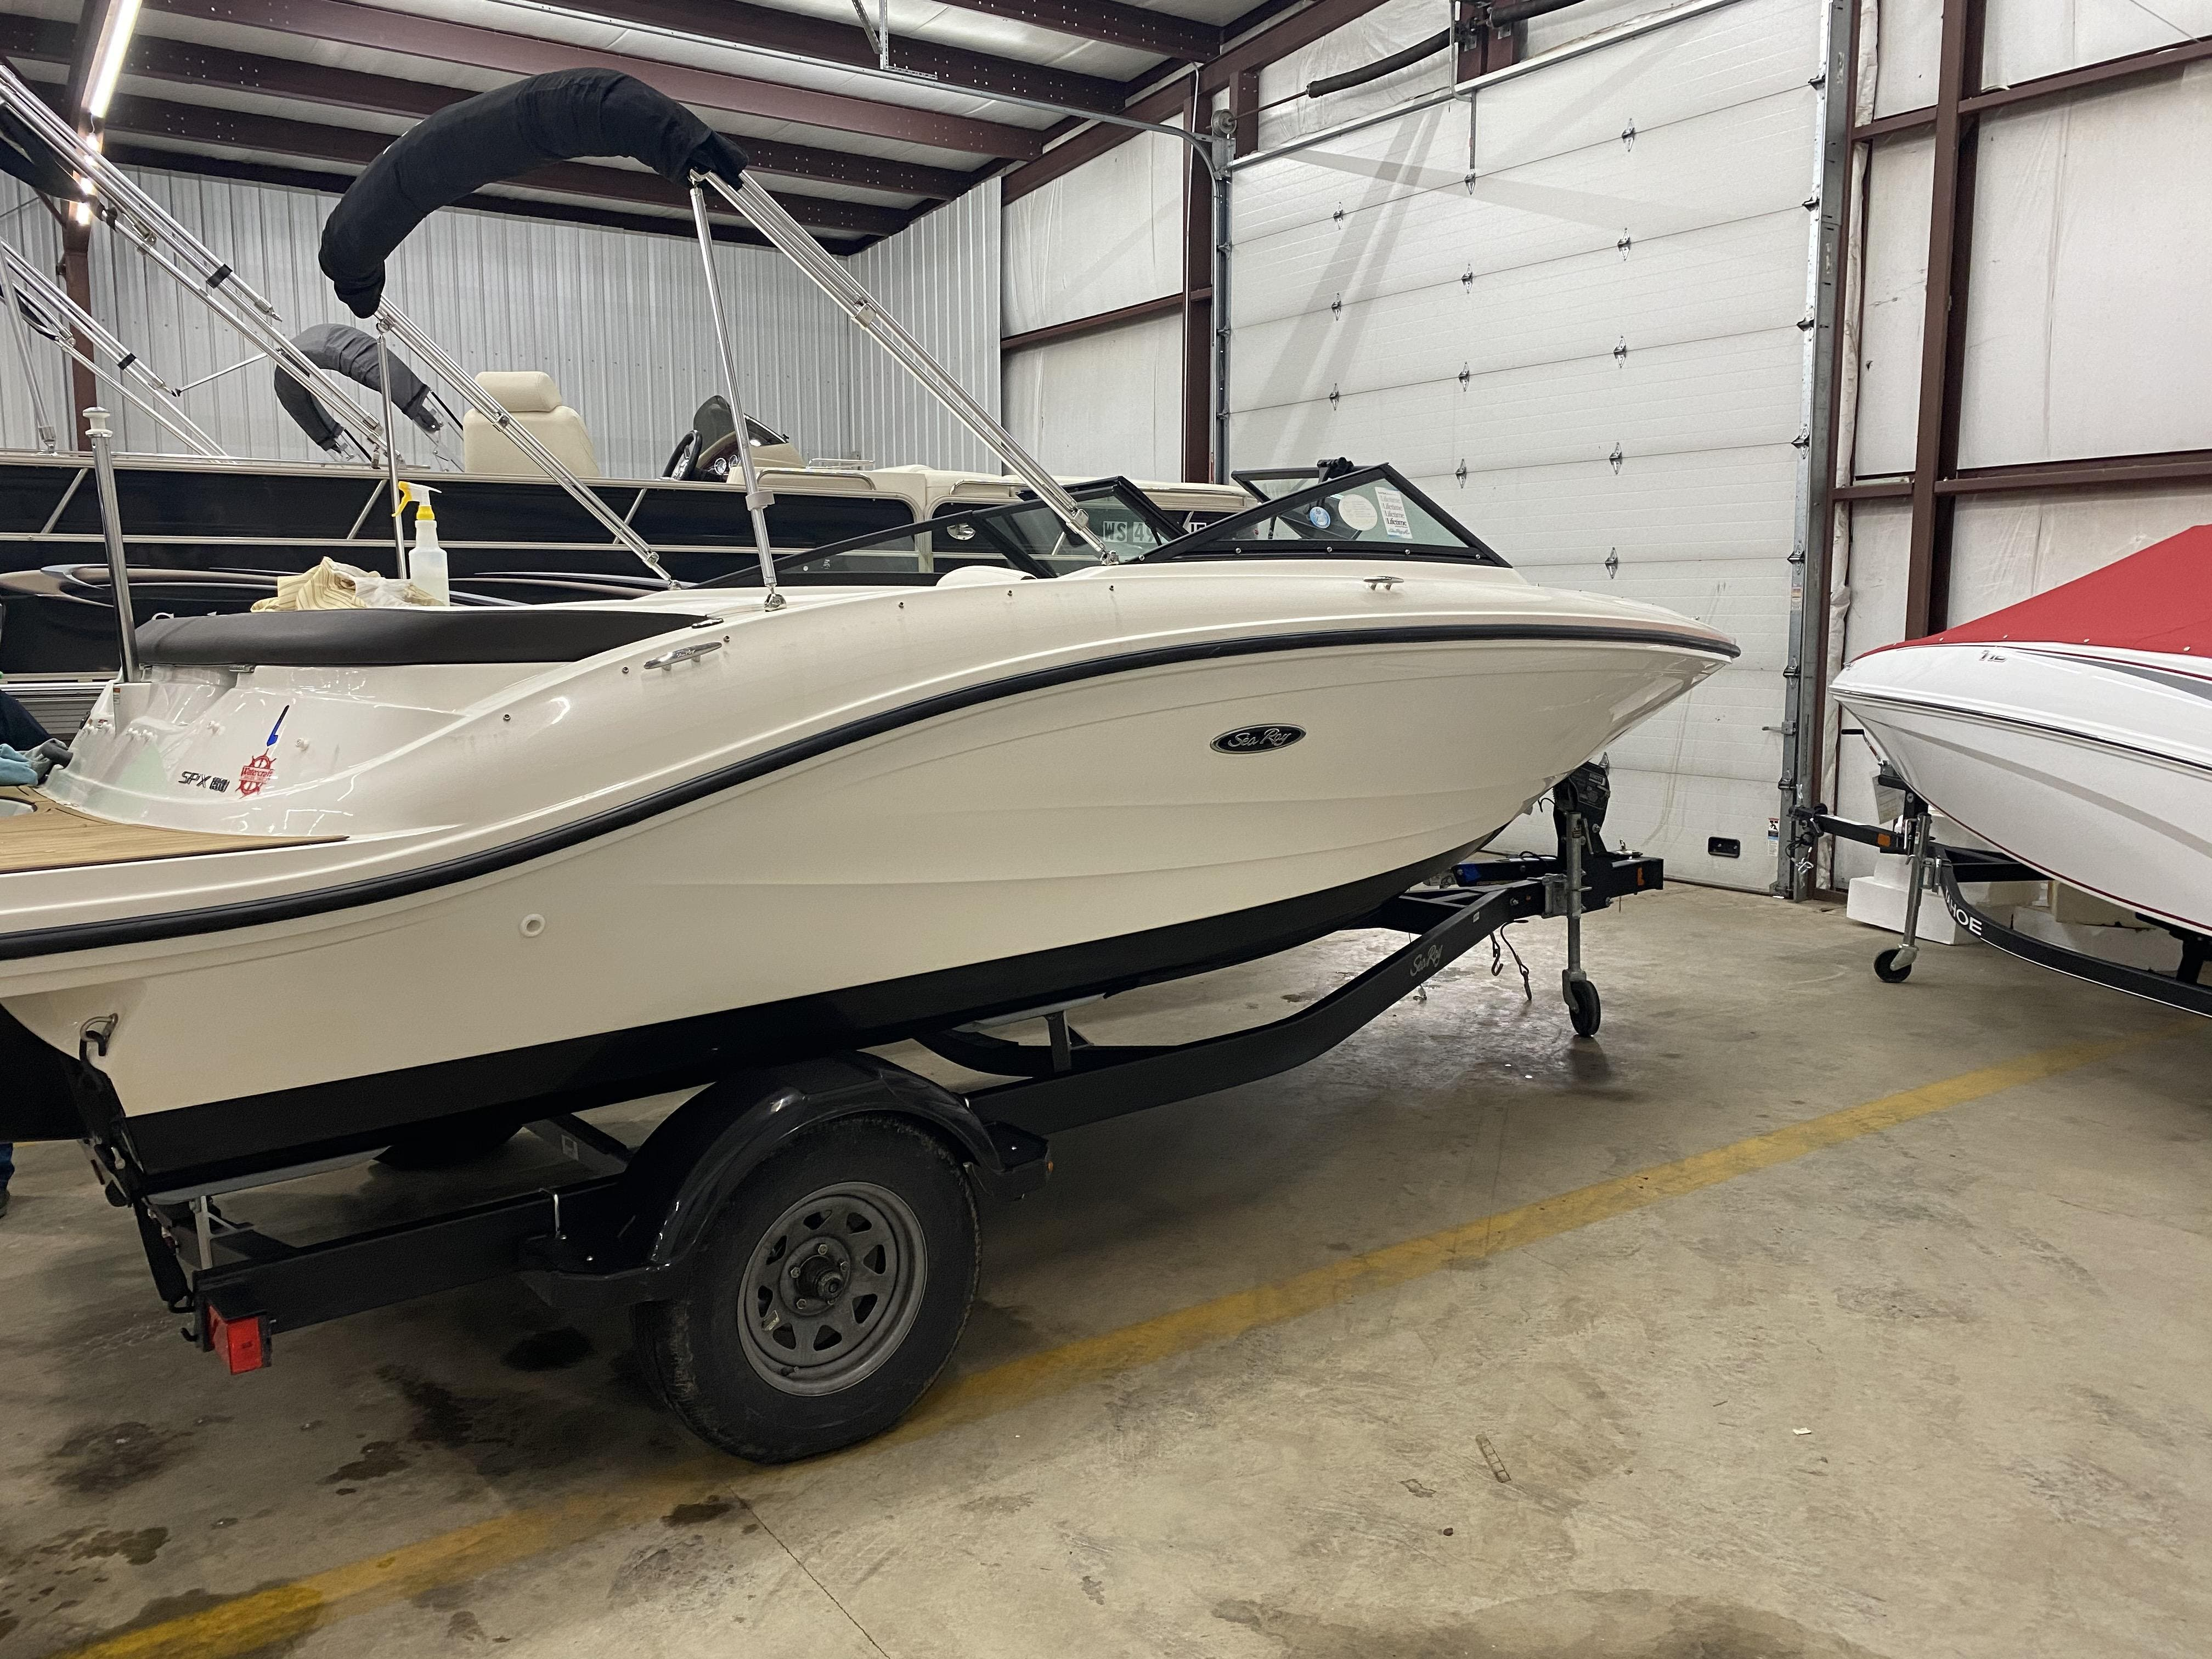 2019 Sea Ray boat for sale, model of the boat is spx & Image # 2 of 5